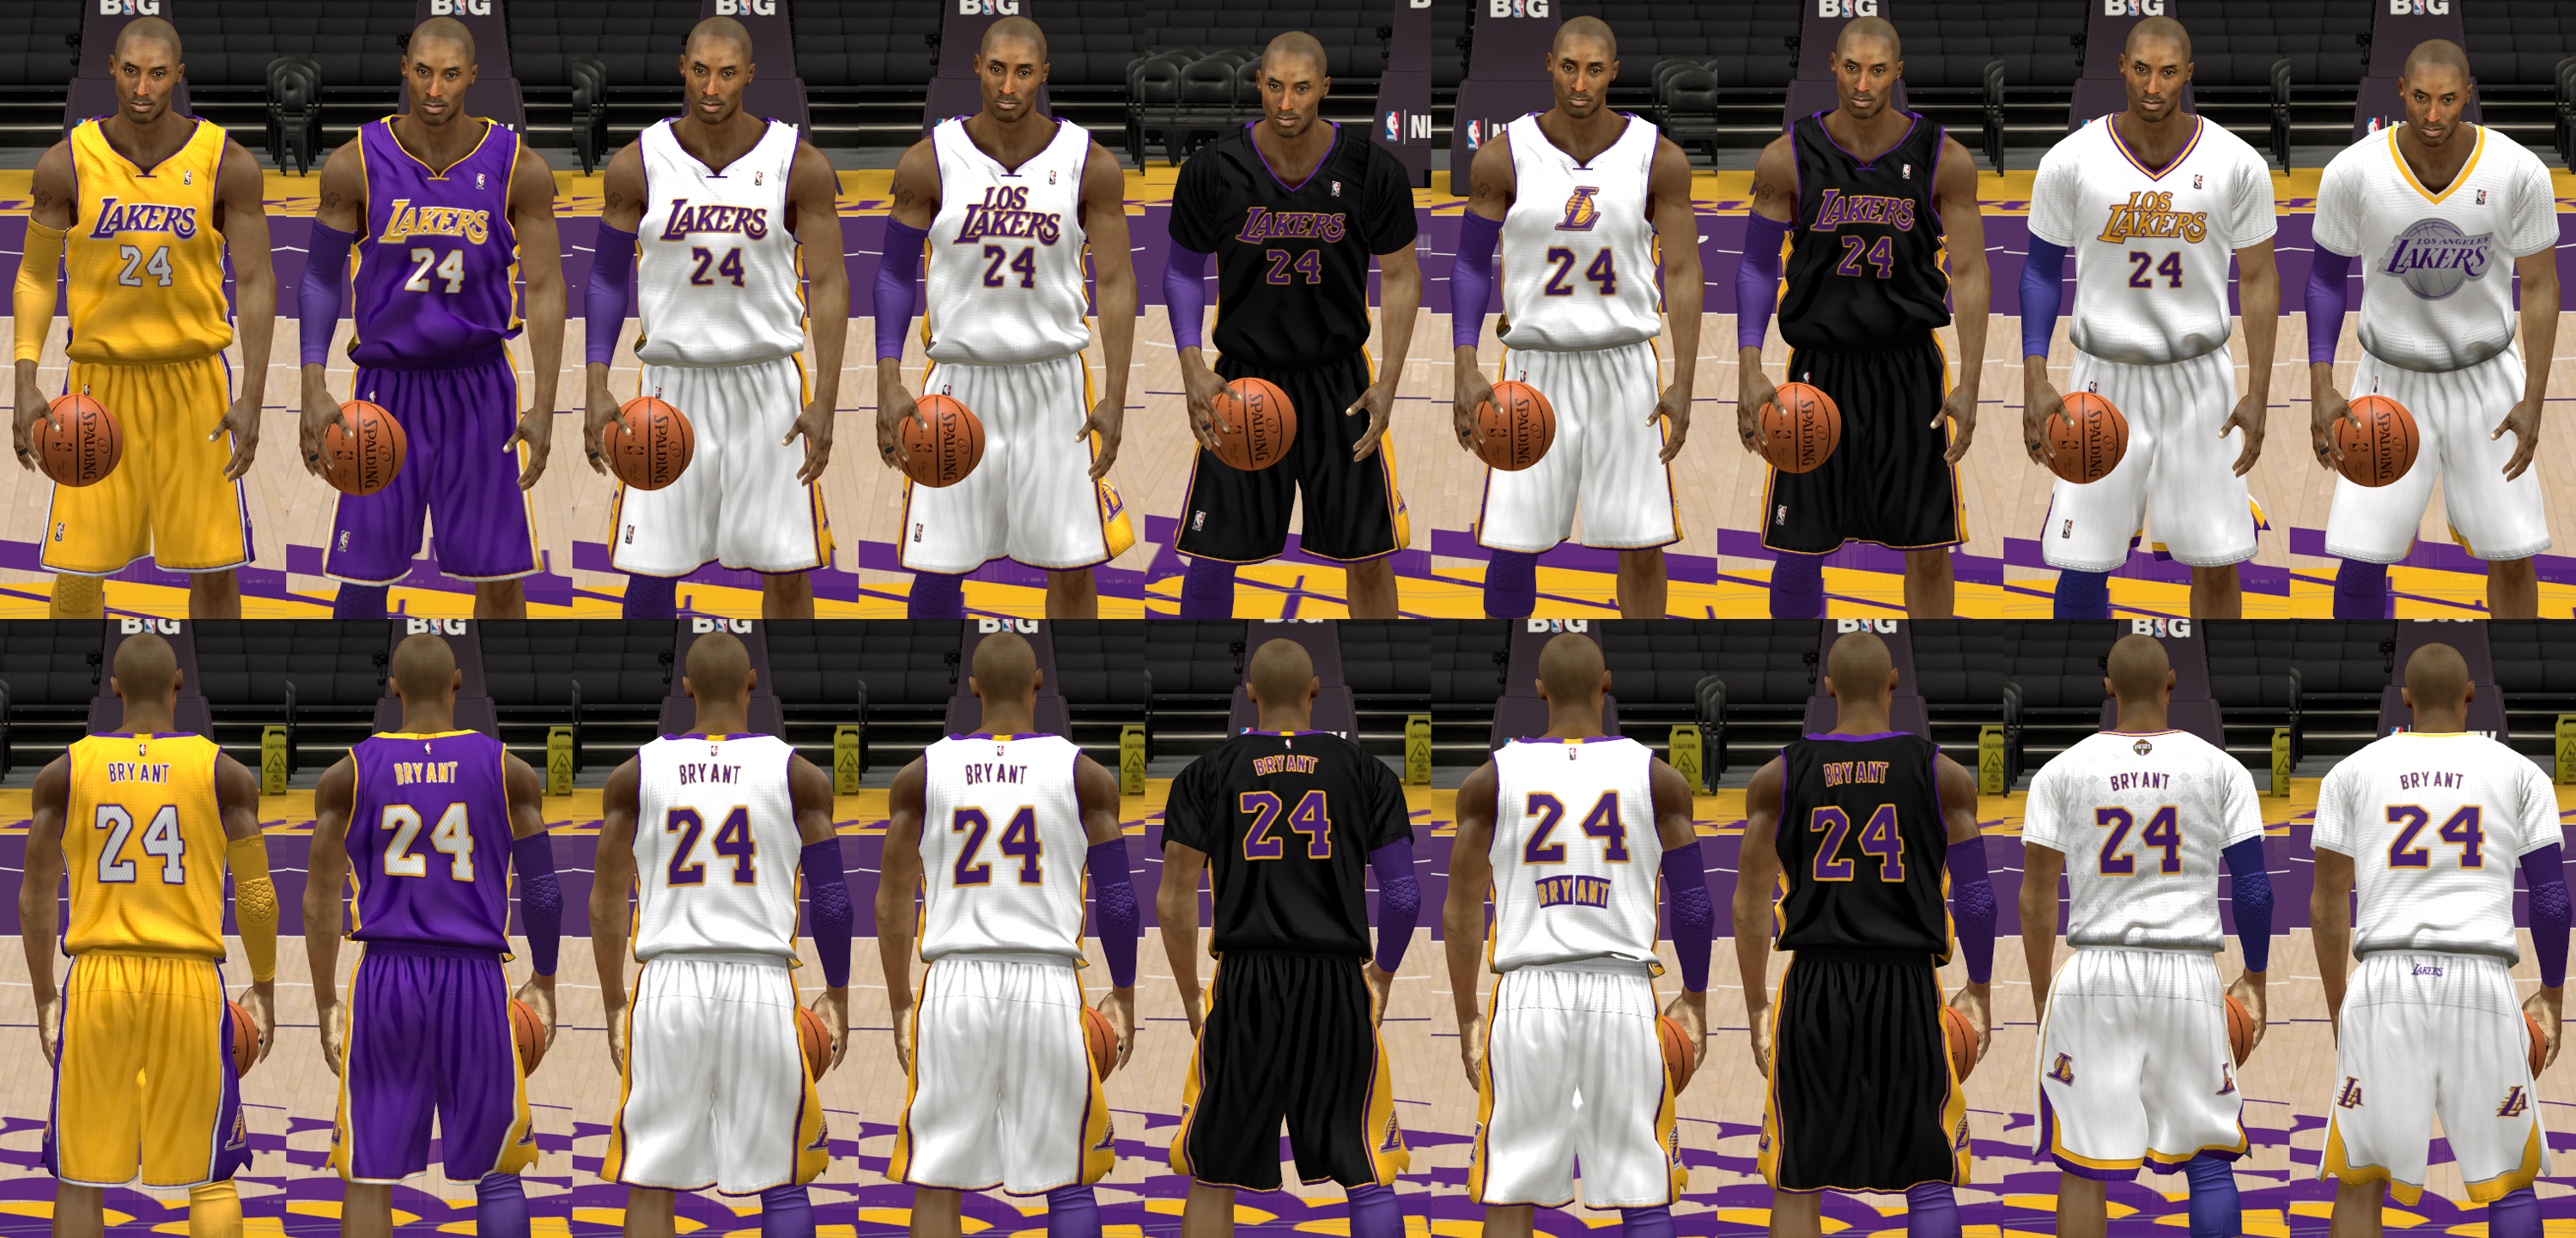 af7f3bdd92f NLSC Forum • Downloads - 2016 Los Angeles Lakers Uniforms